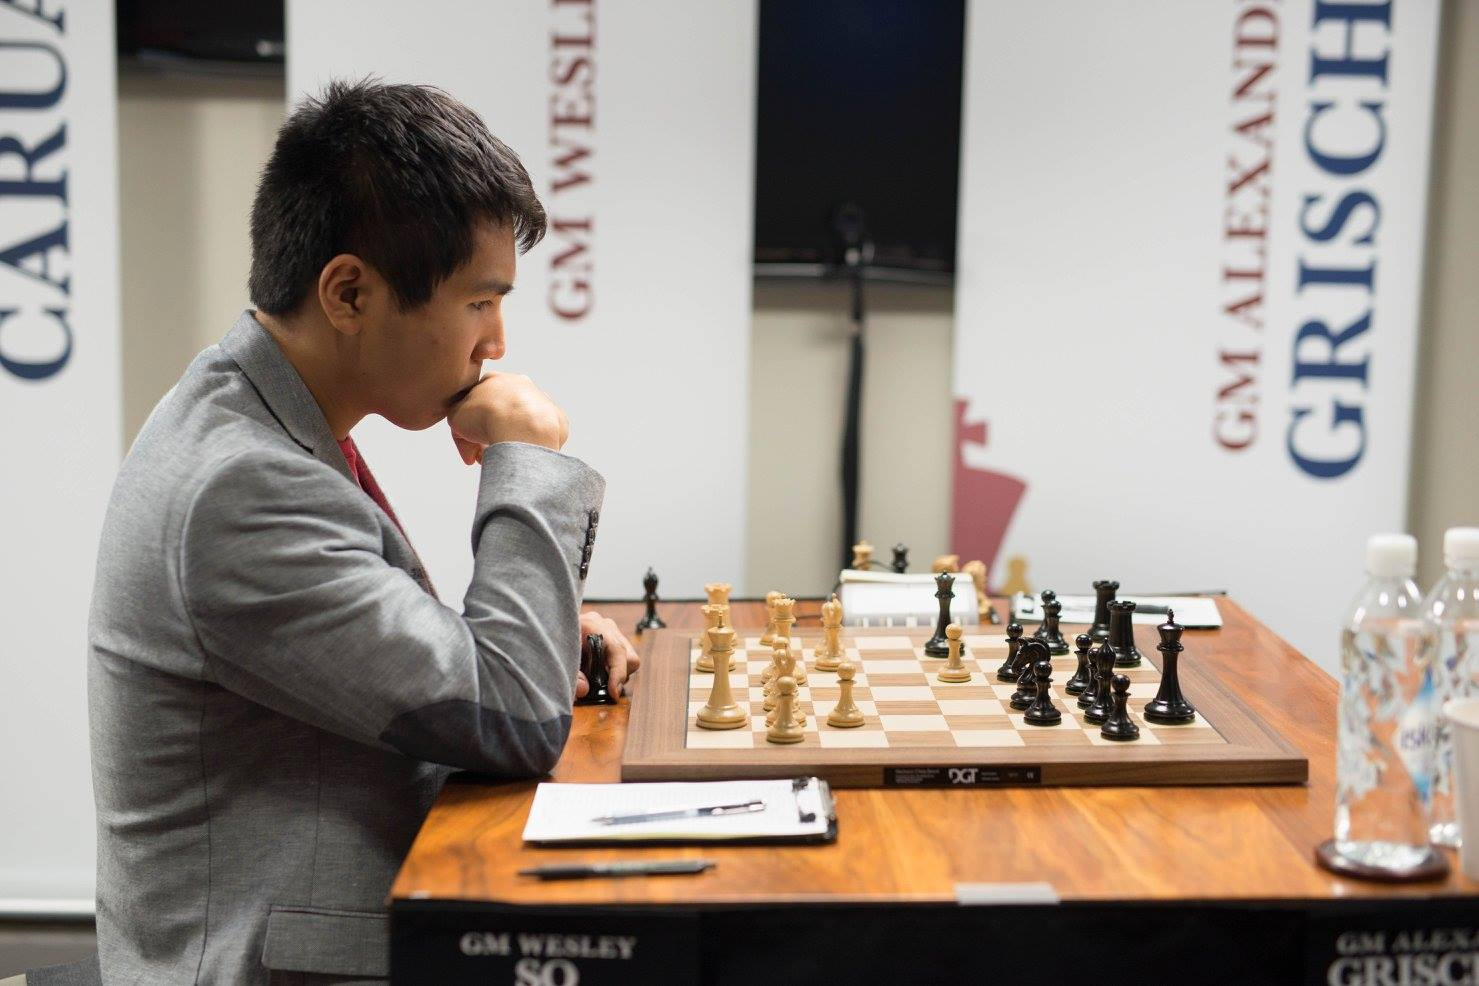 Filipino Grandmaster Wesley So at the Sinquefield Cup in Saint Louis, Missouri (Source: facebook page of Chess Club and Scholastic Center of St. Louis/Photo by Austin Fuller)